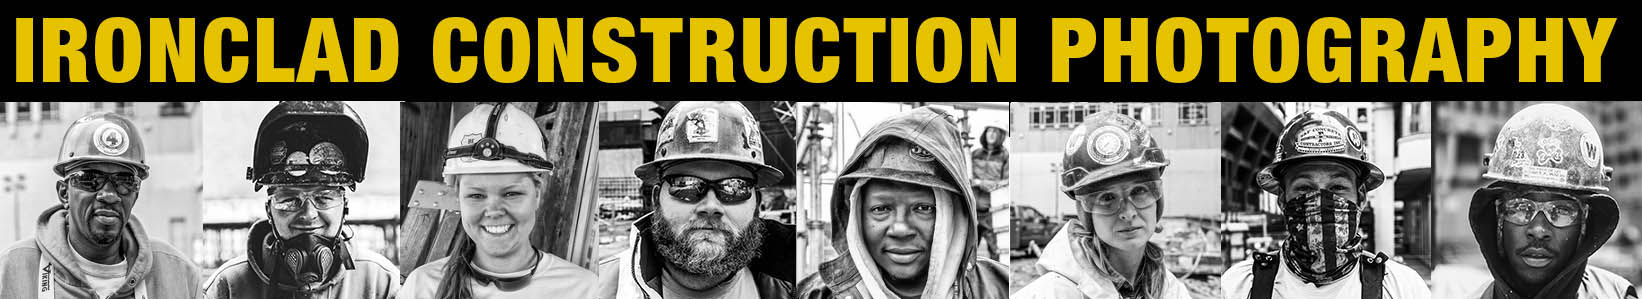 Ironclad construction photography by Lou Jones